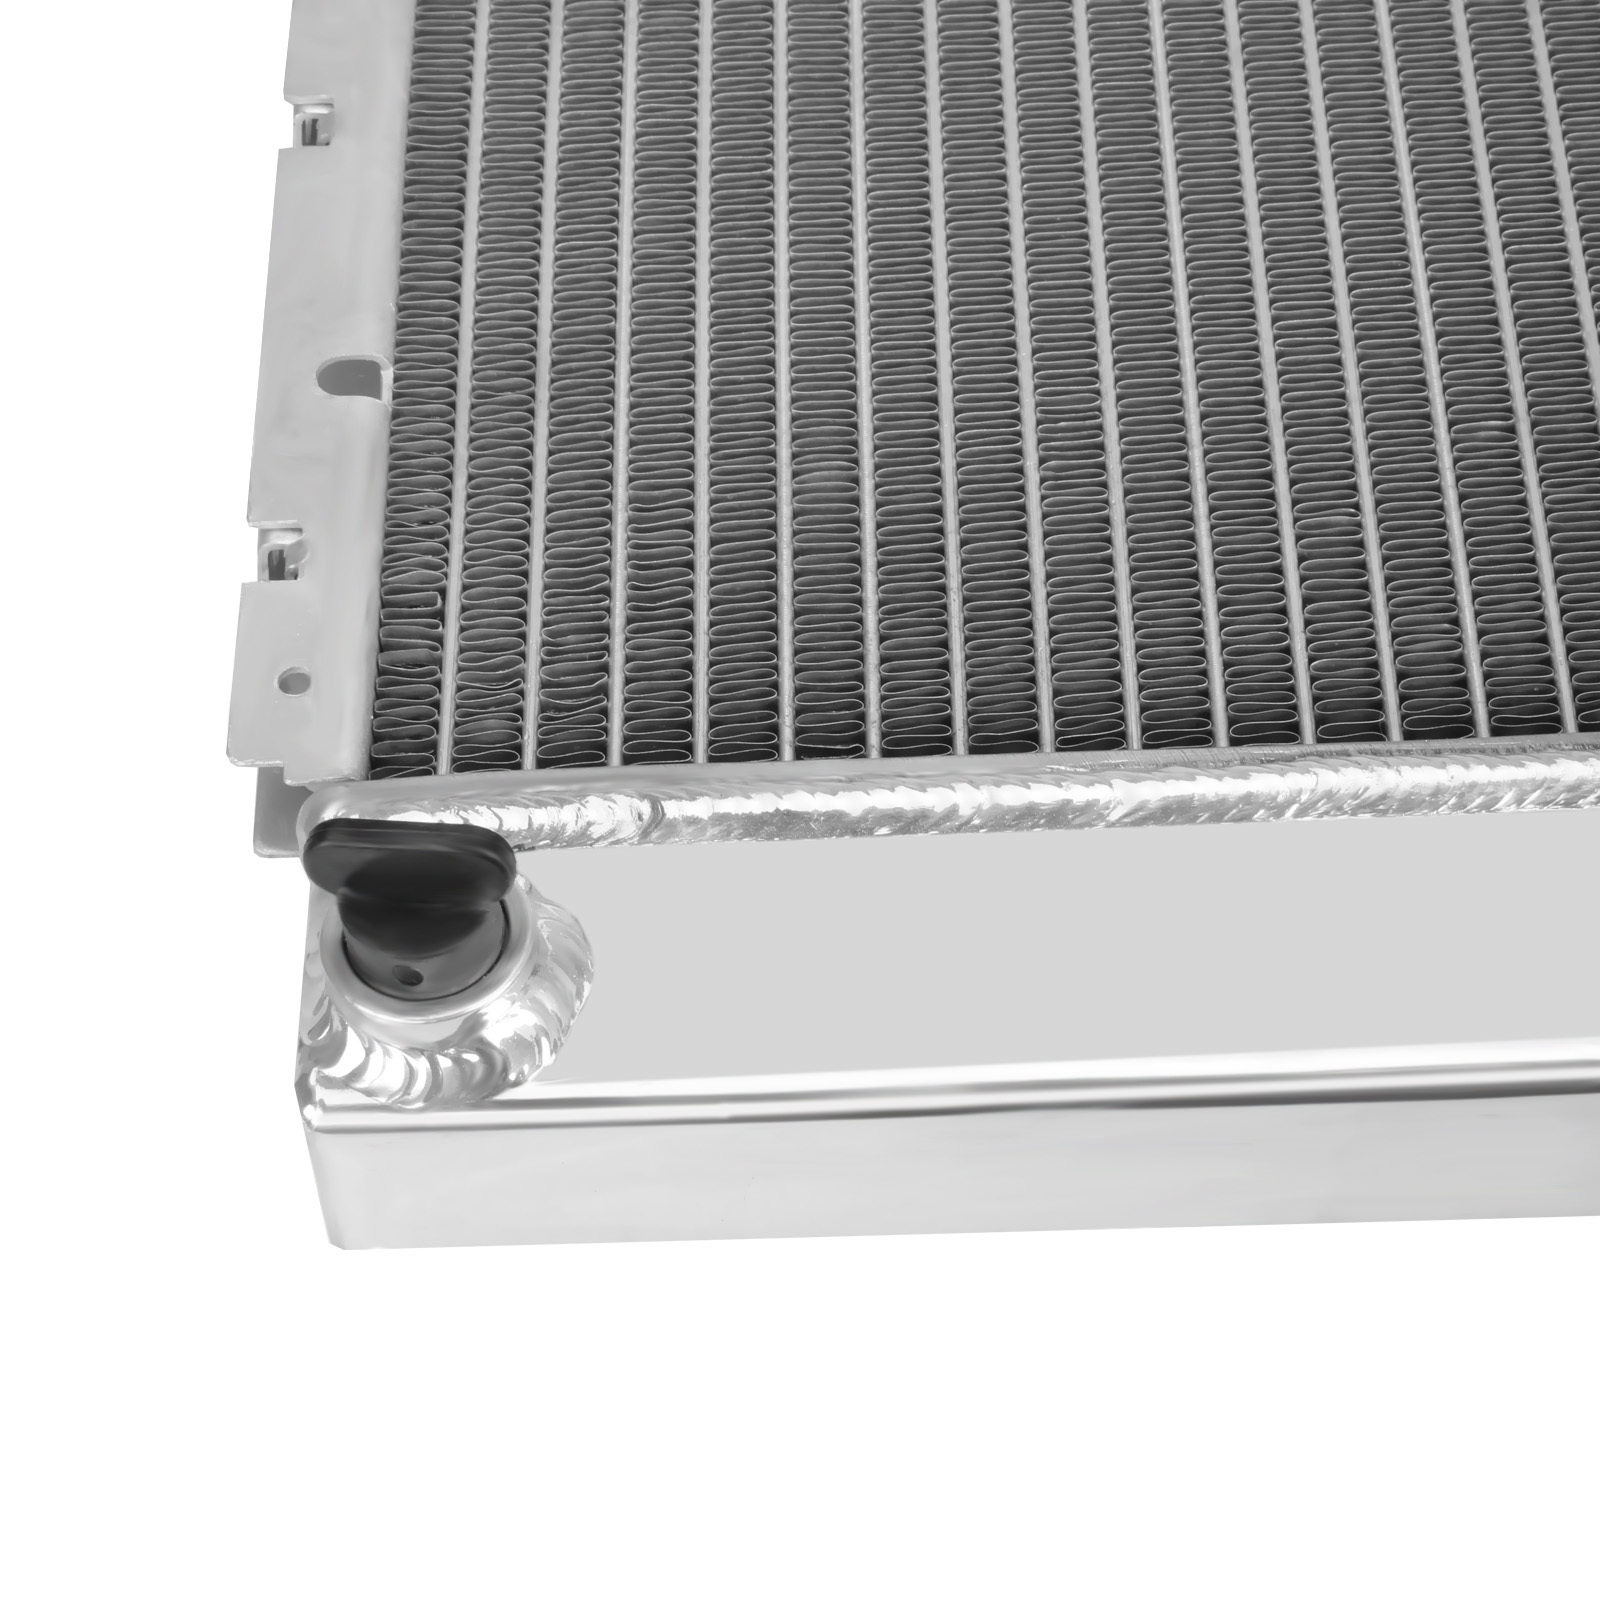 New 2688 Full Aluminum Radiator for LEXUS RX 330 3.3-202-V6 2004-2006